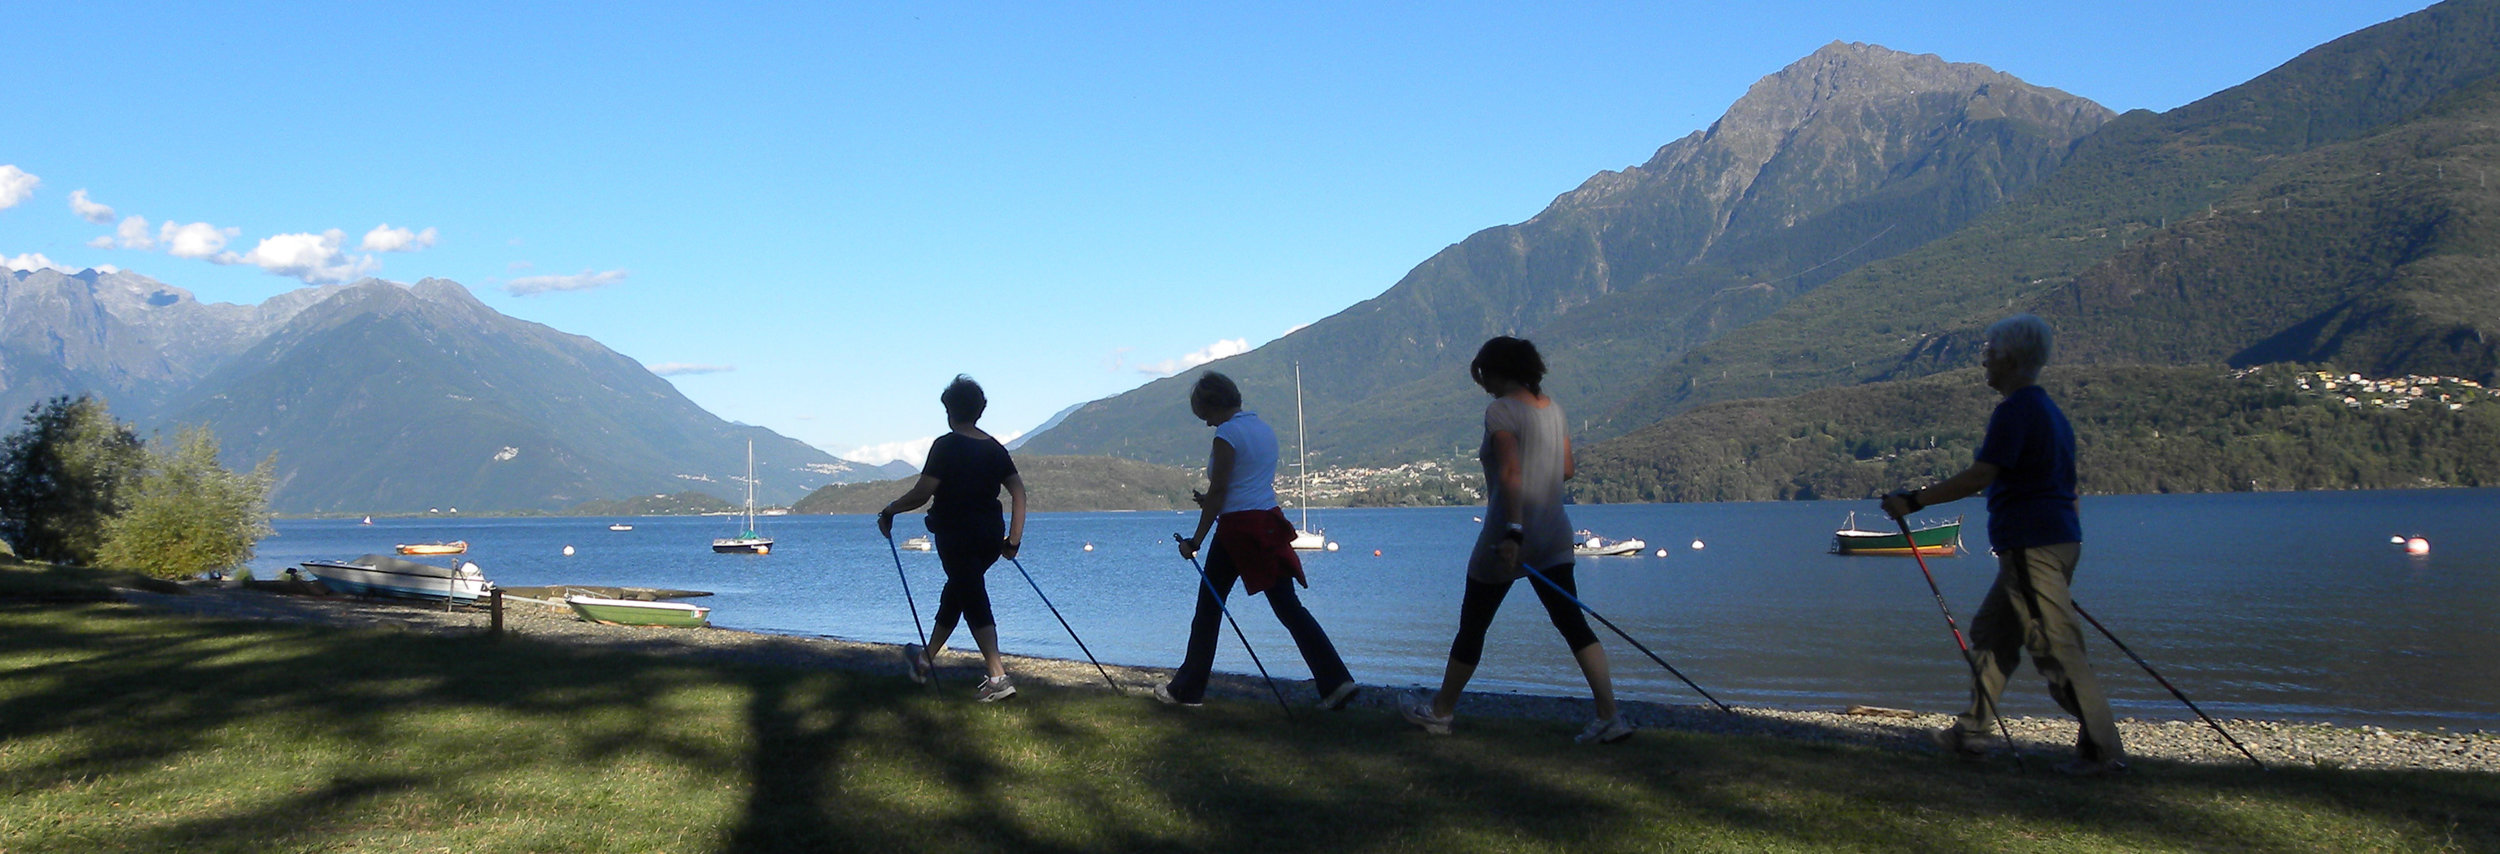 Lake Como Nordic Walking 008.jpg